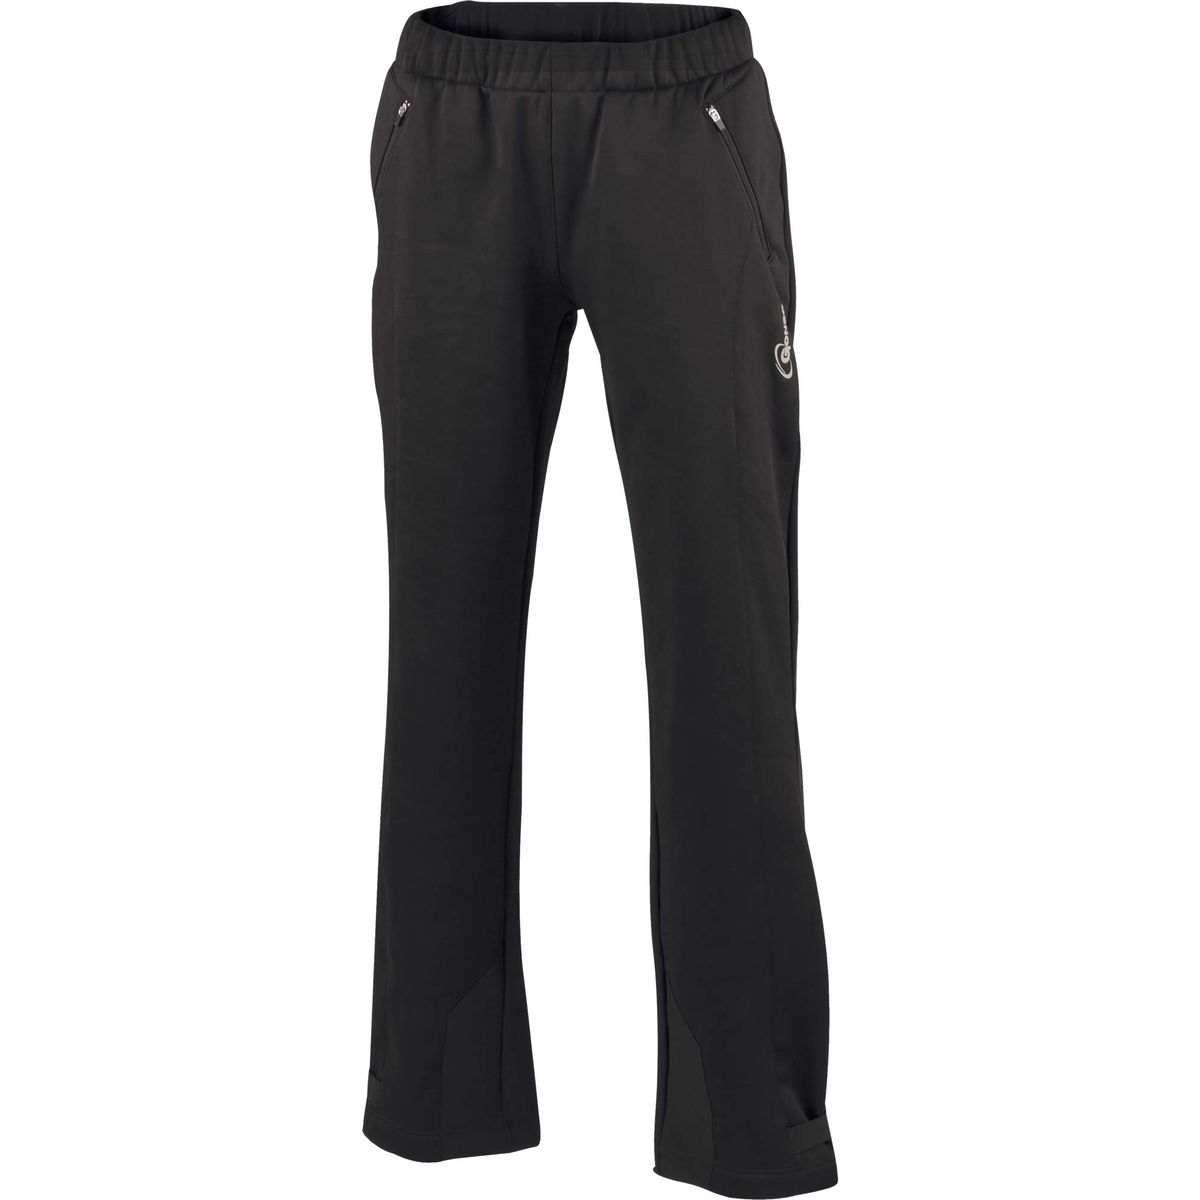 RIGA V2 thermal trousers for women